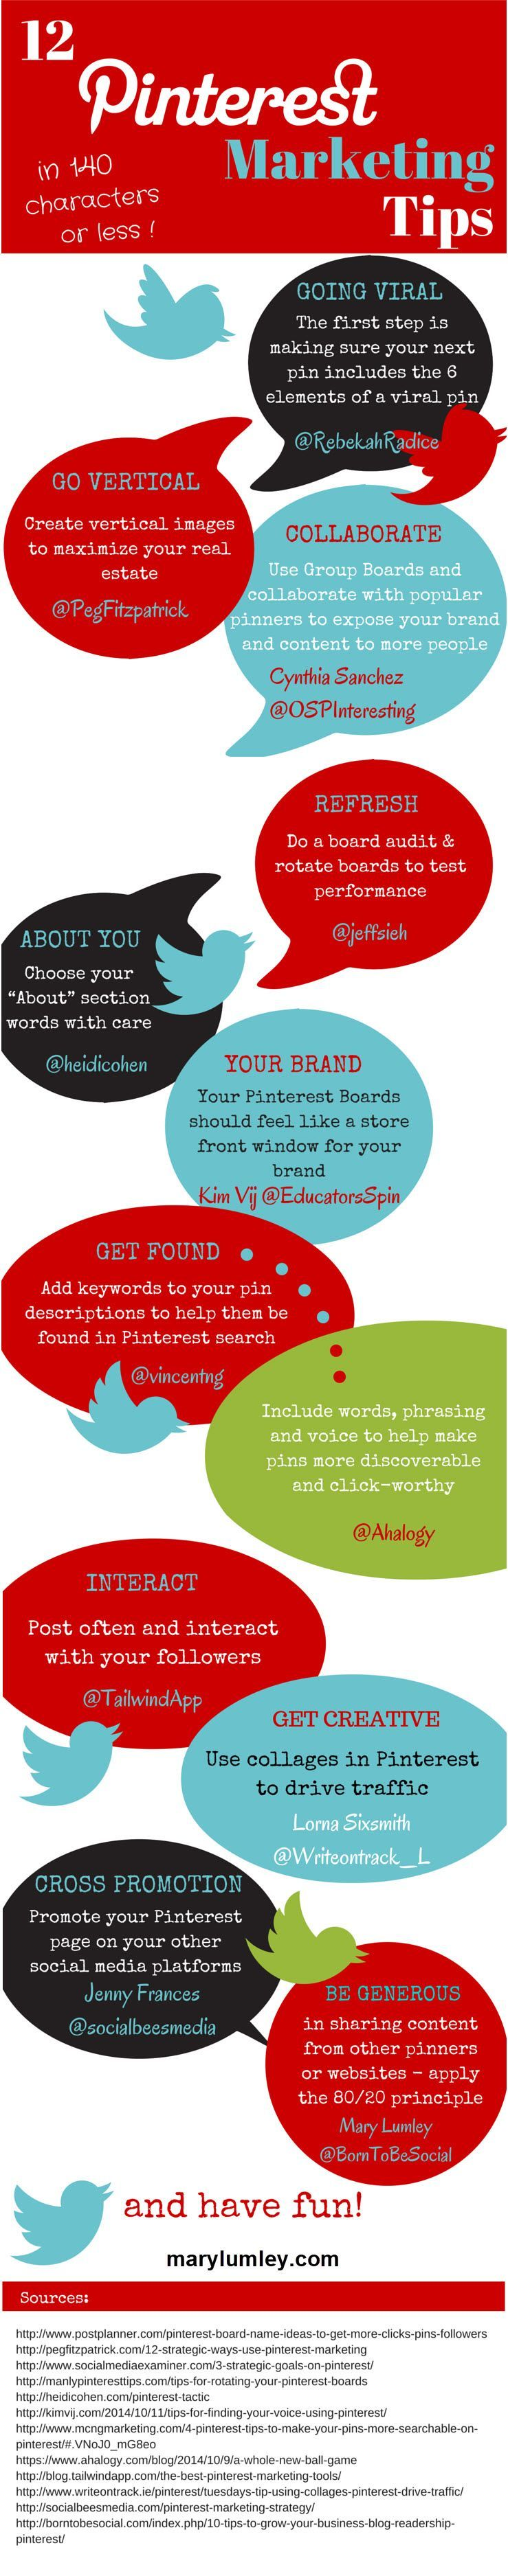 12 Tweetable Pinterest Marketing Tips from the Pros - Infographic. Looking for inspiration to improve your marketing efforts on Pinterest?  Want to drive more traffic to your website through Pinterest? Here are 12 highly tweetable and actionable tips